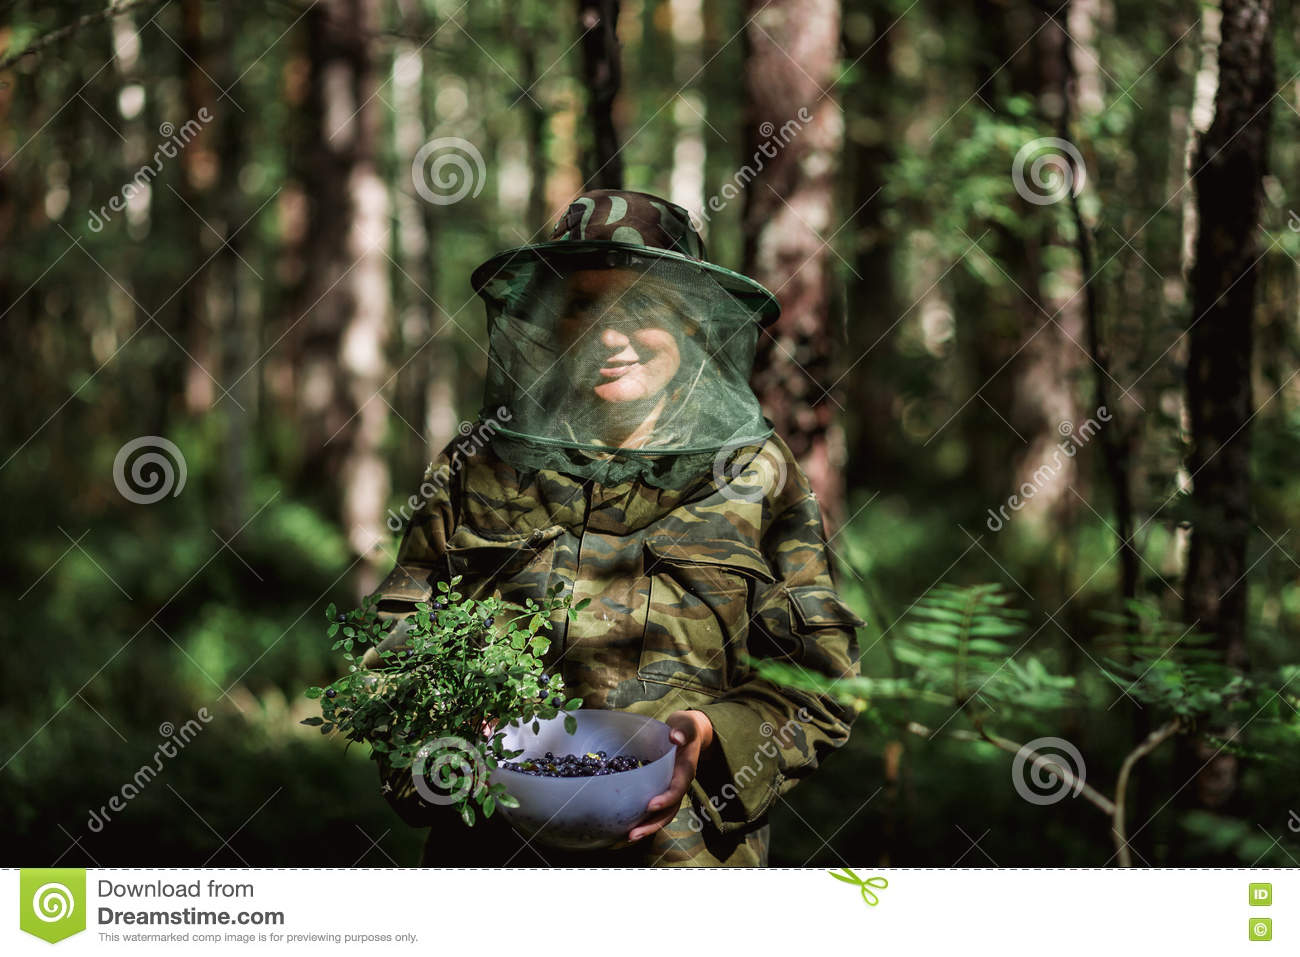 girl in camouflage clothing